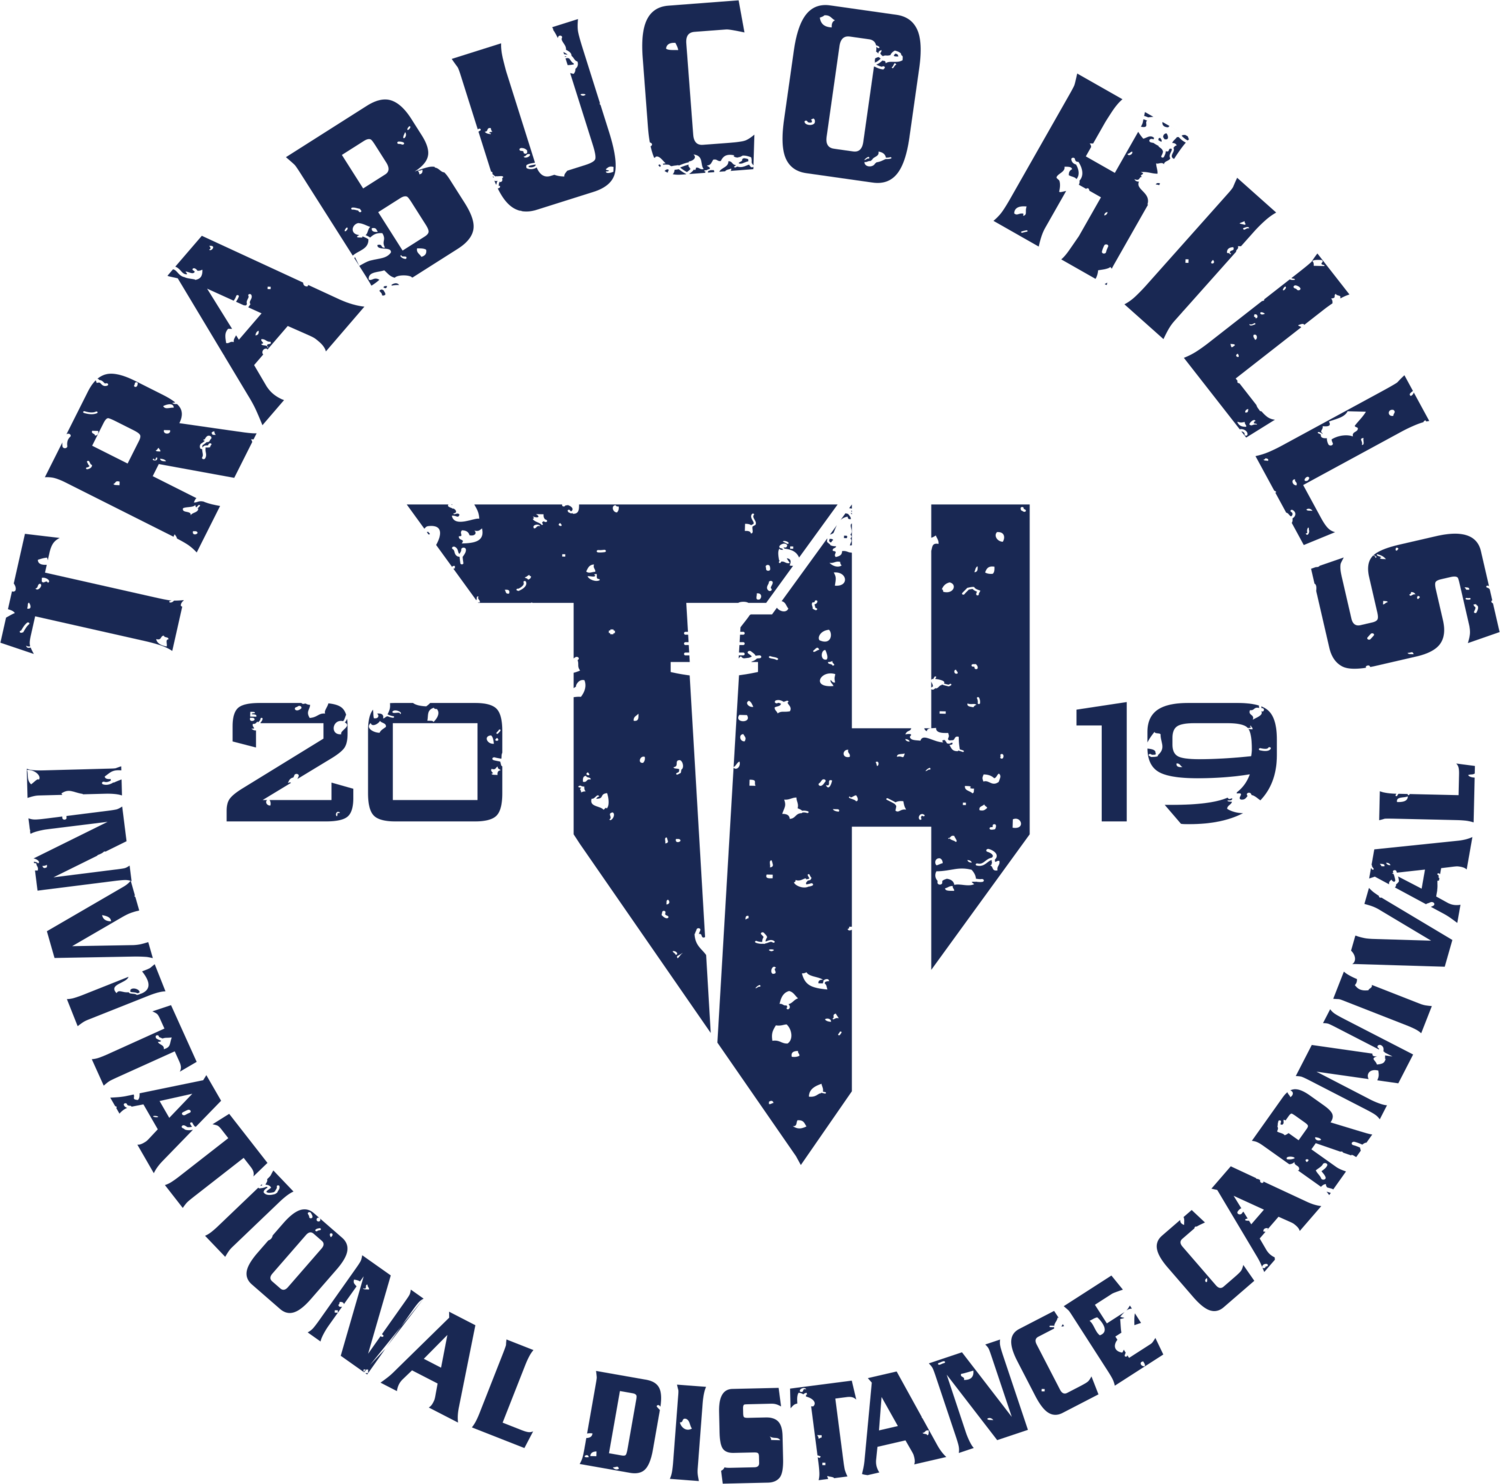 29th Trabuco Hills Invitational and Distance Carnival